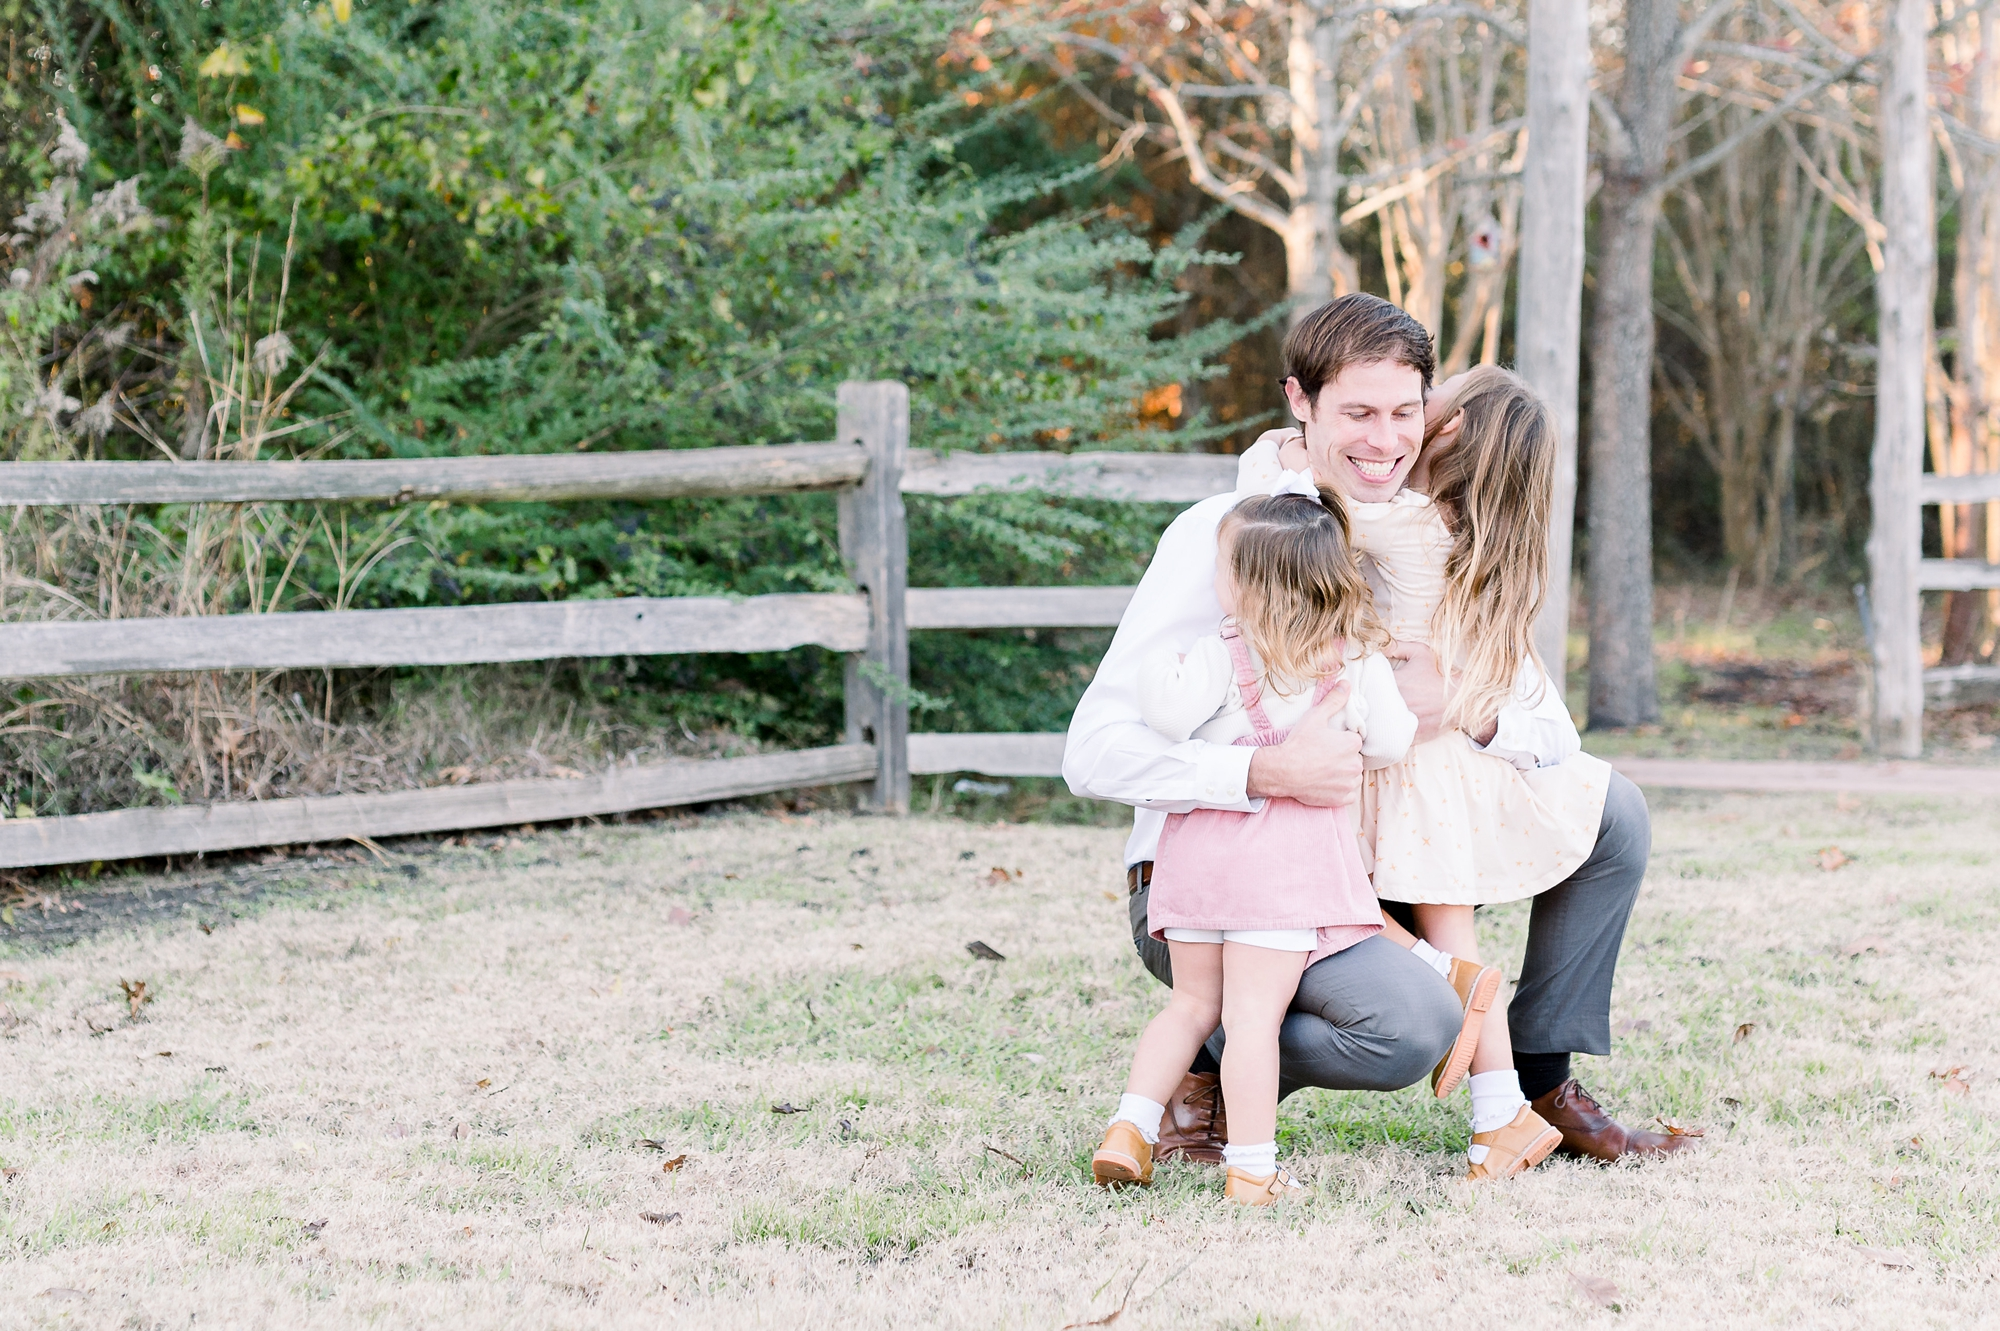 Dad sitting with daughters during family session at McKinney park. Image by Aimee Hamilton Photography.